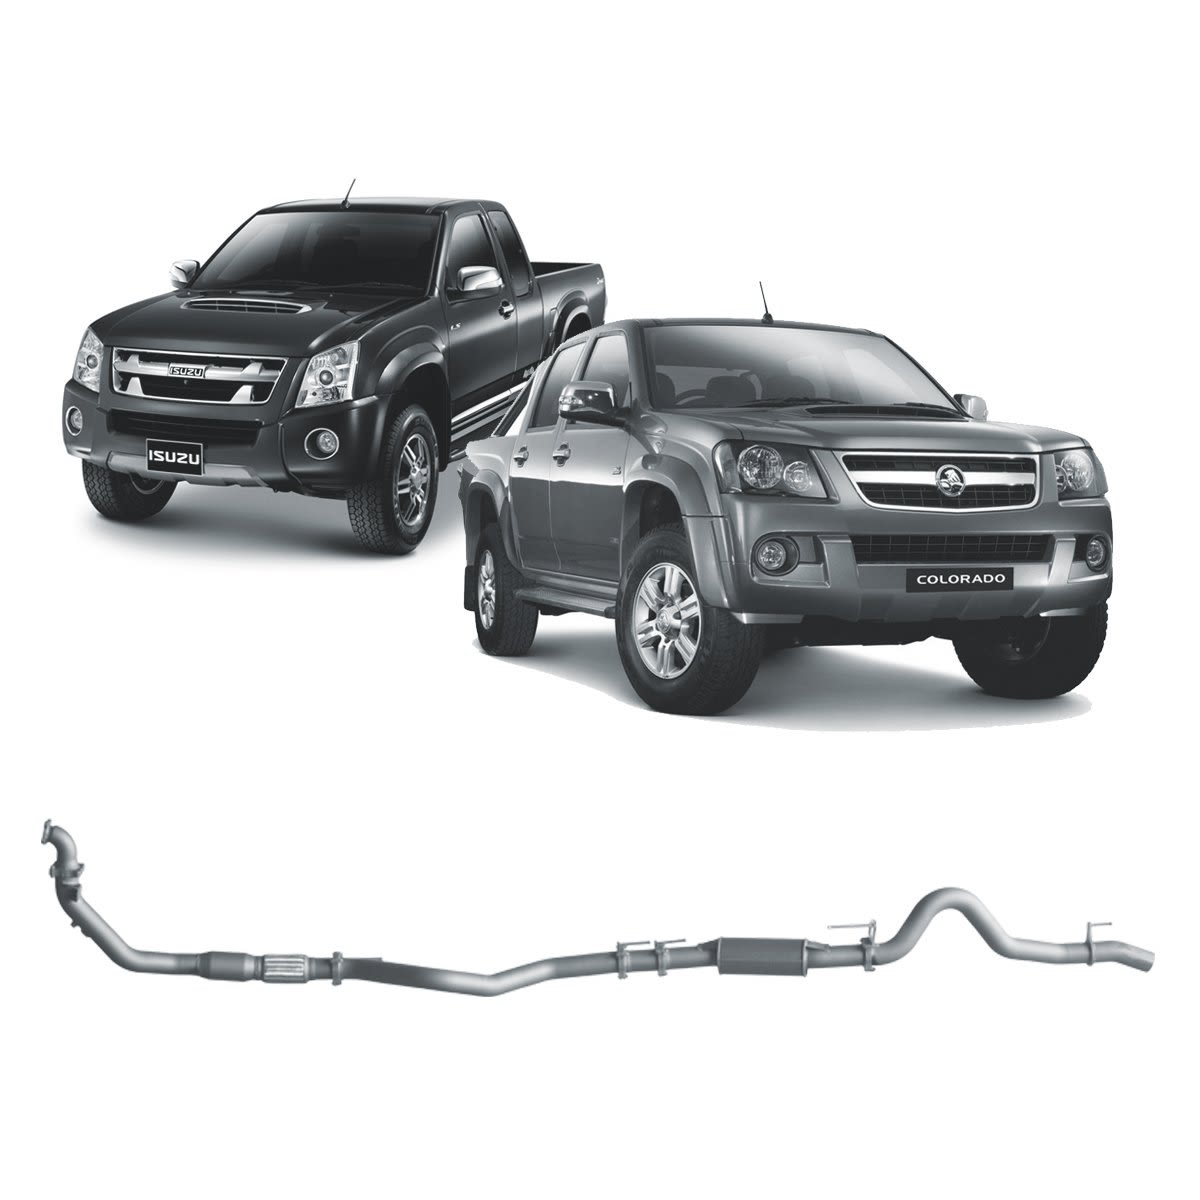 Redback Extreme Duty to suit Holden Rodeo (01/2007 - 06/2008), Colorado (03/2008 - 06/2012), Isuzu D-MAX (01/2007 - 08/2012)